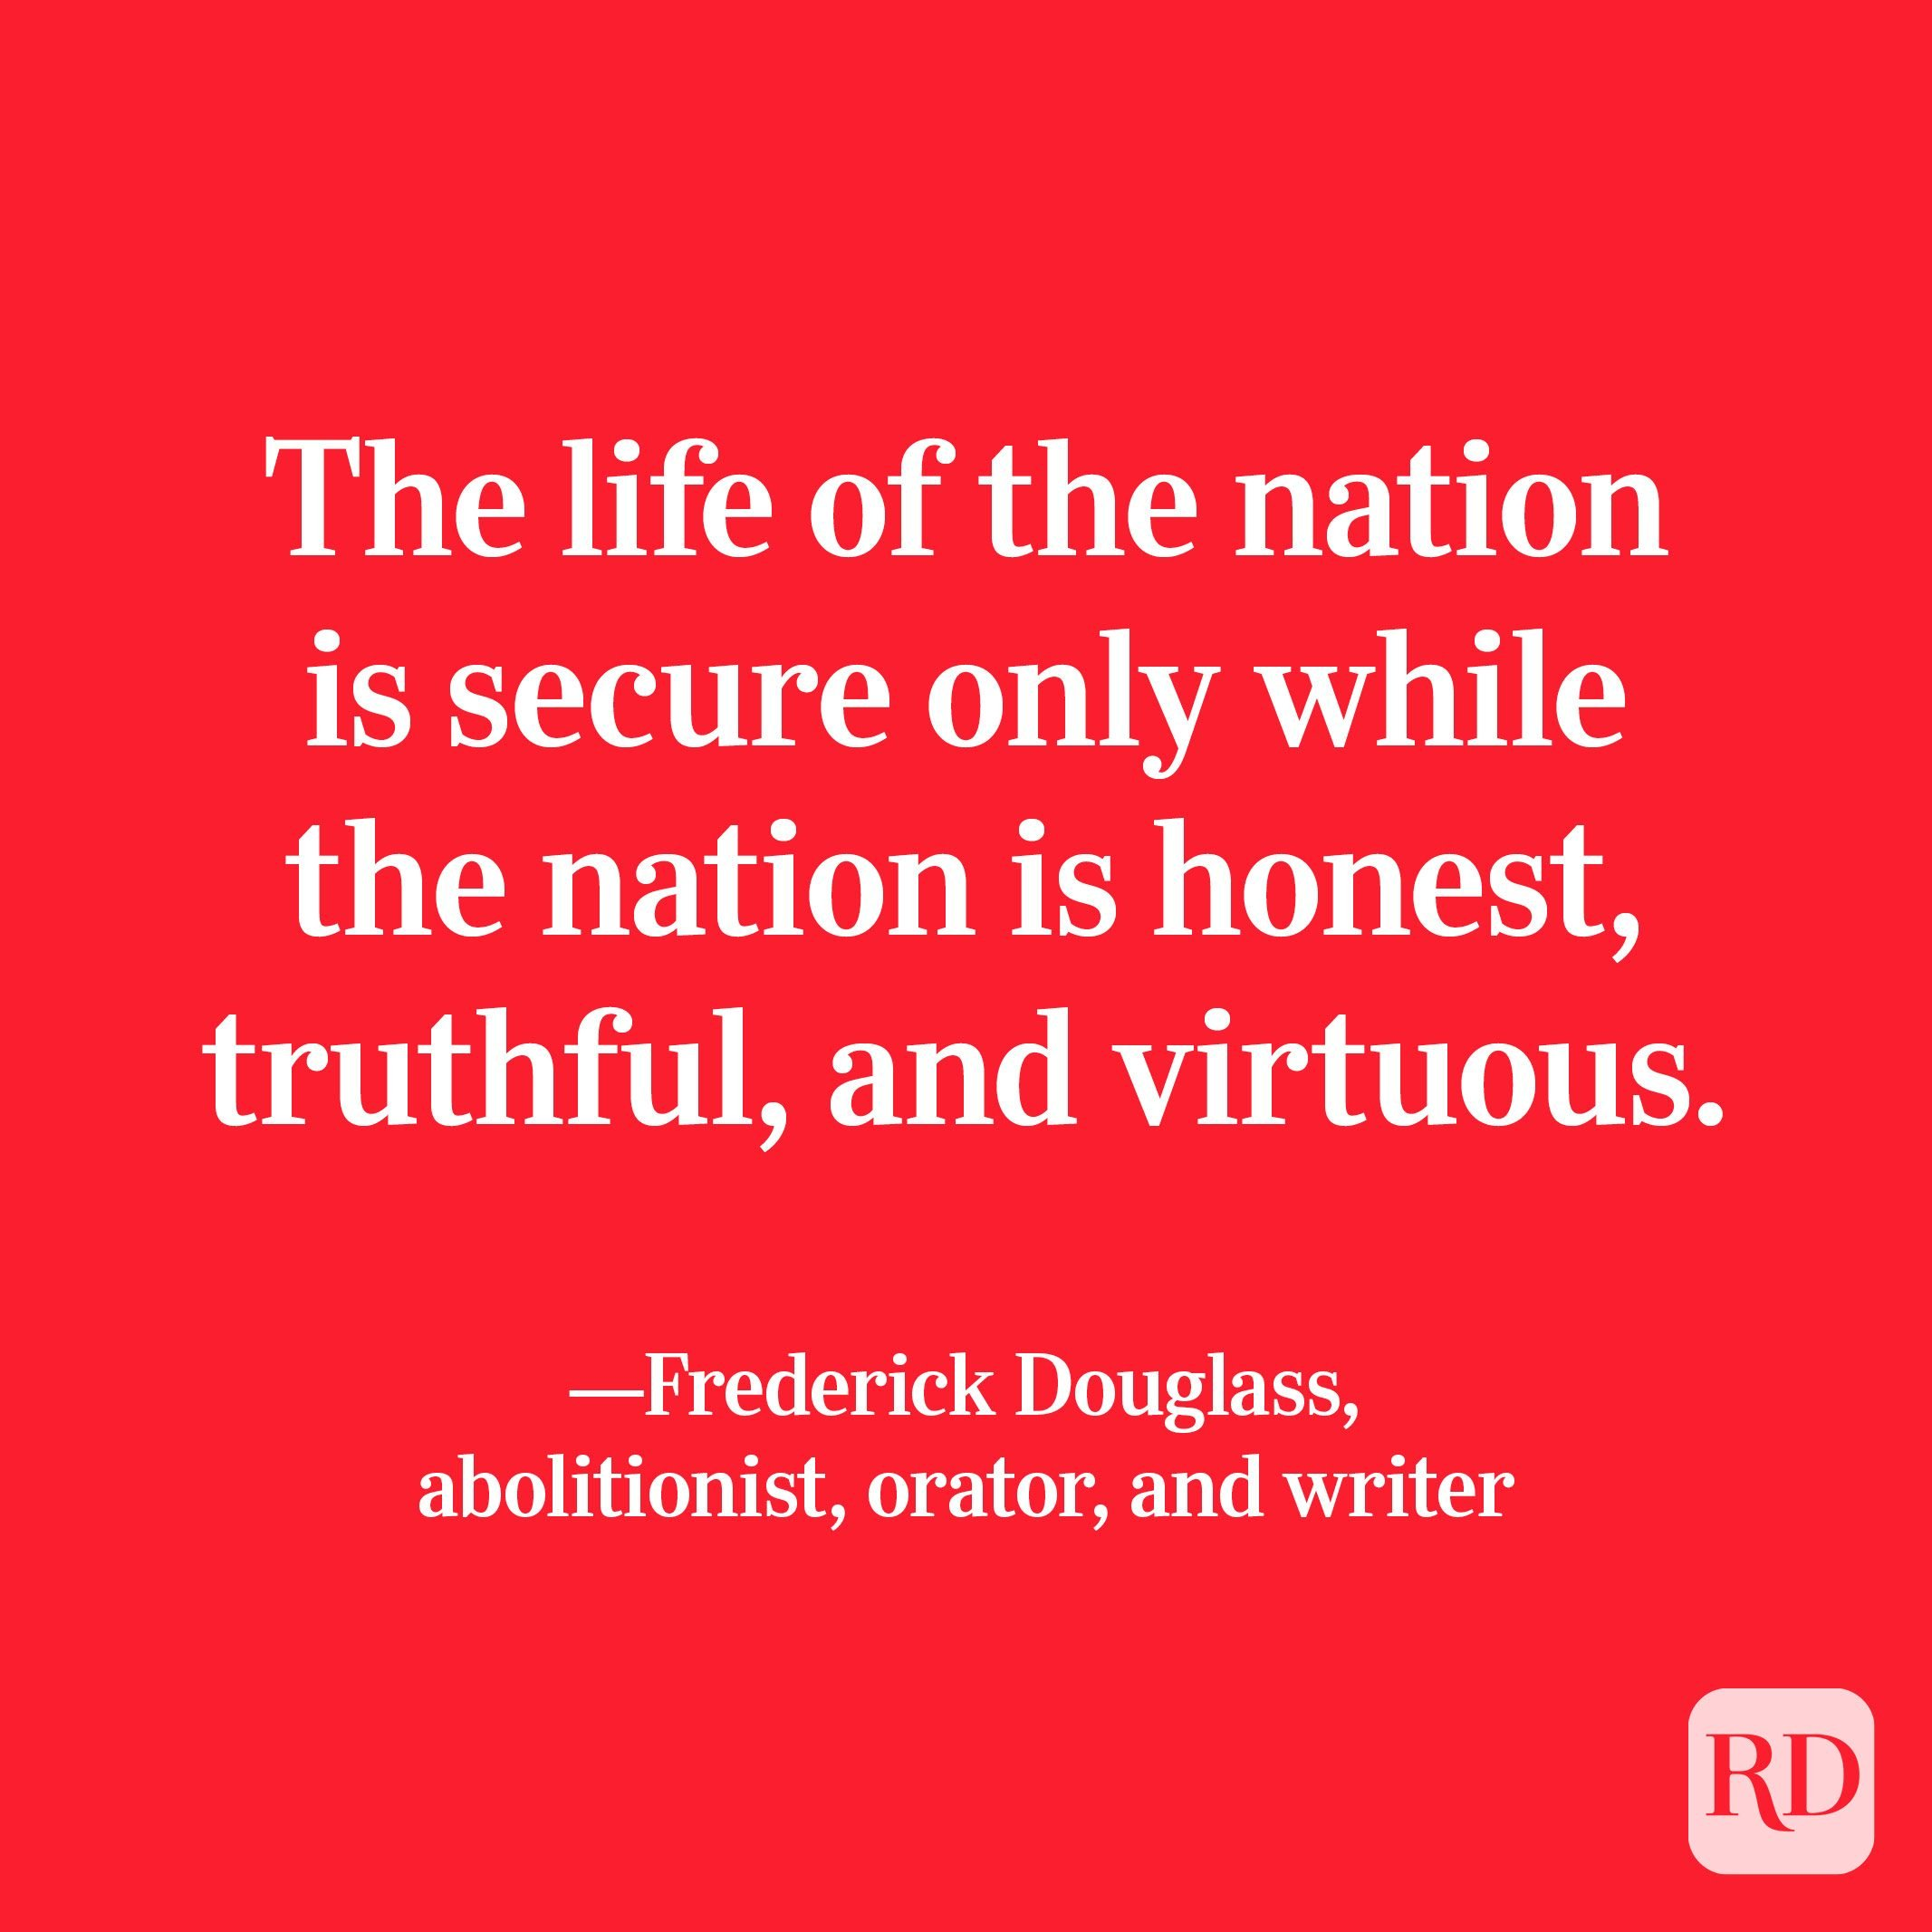 """""""The life of the nation is secure only while the nation is honest, truthful, and virtuous."""" —Frederick Douglass, abolitionist, orator, and writer"""